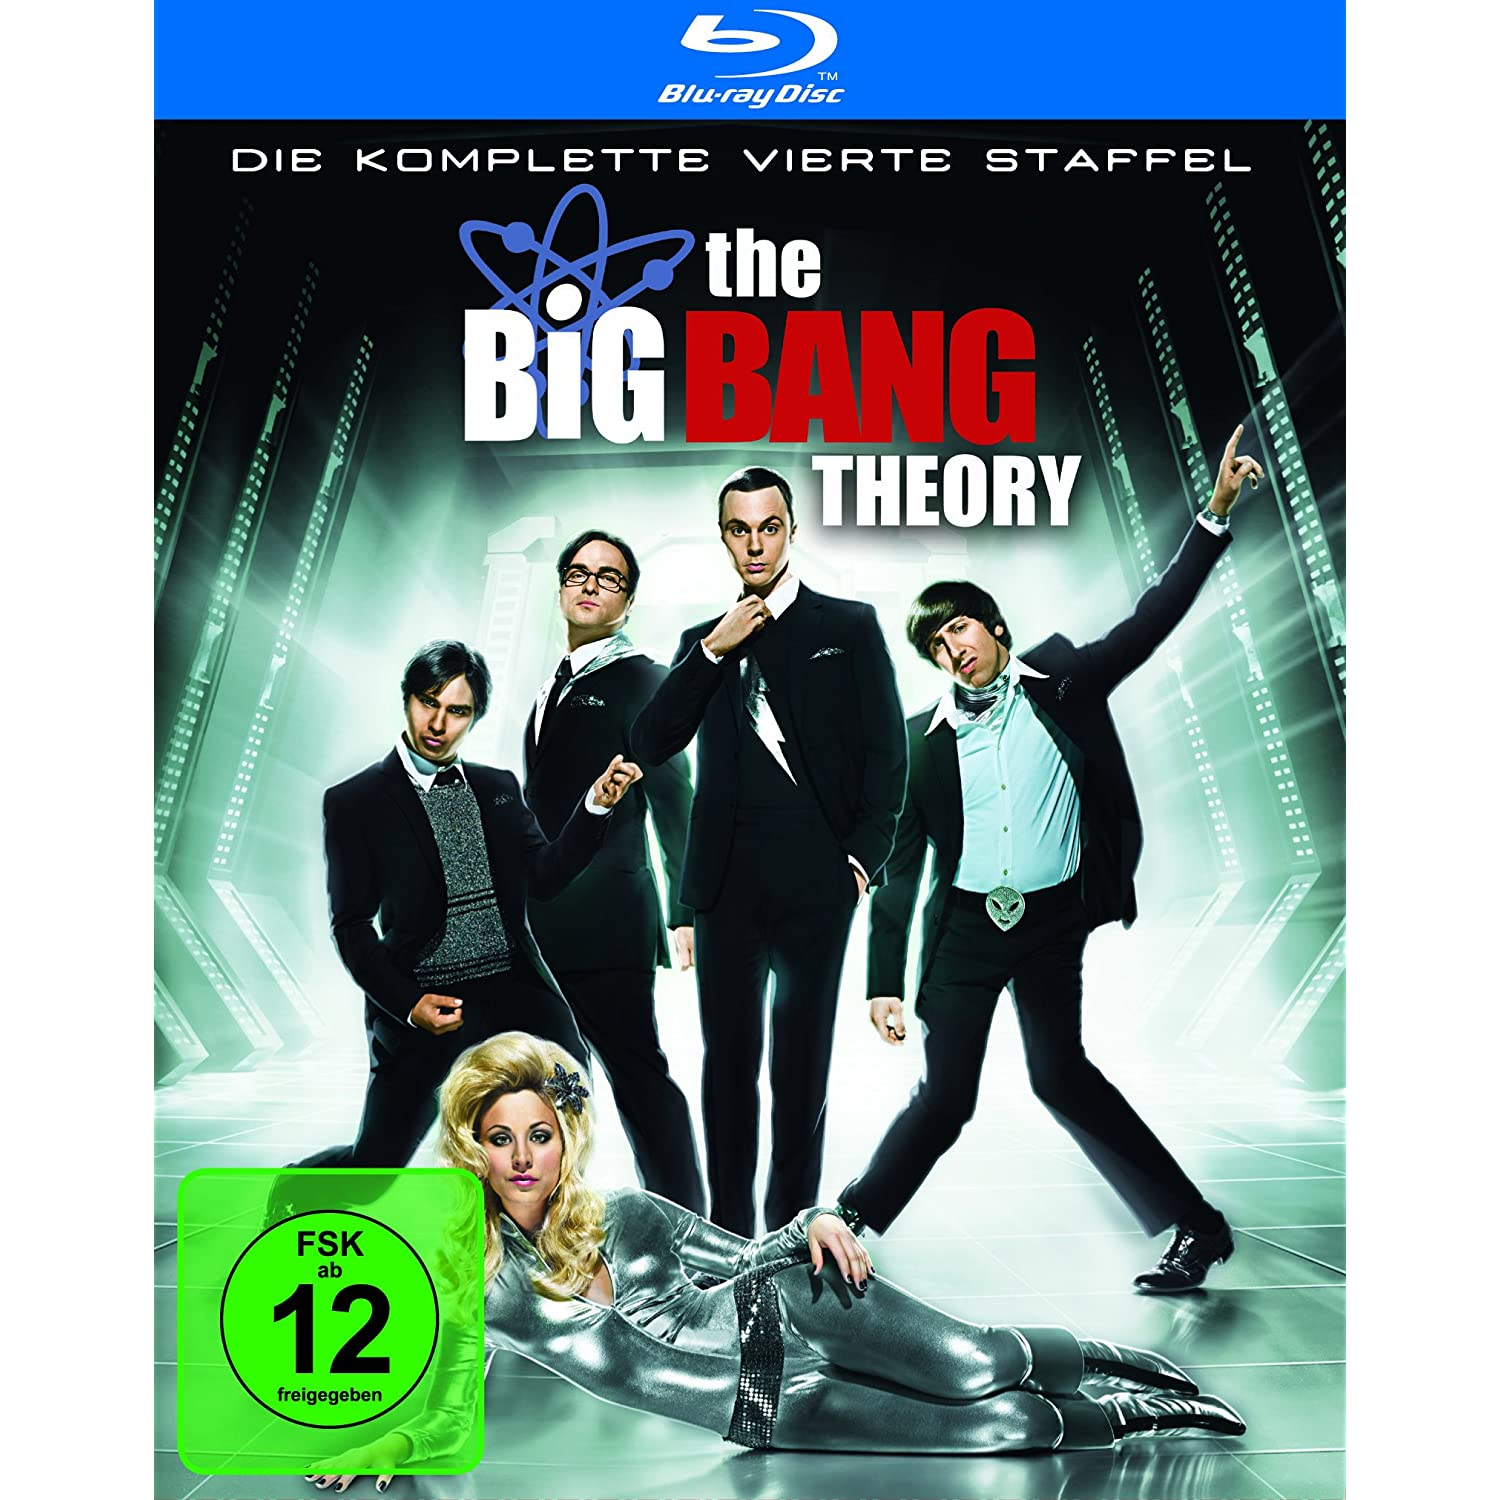 The Big Bang Theory - Die komplette vierte Staffel Blu-ray